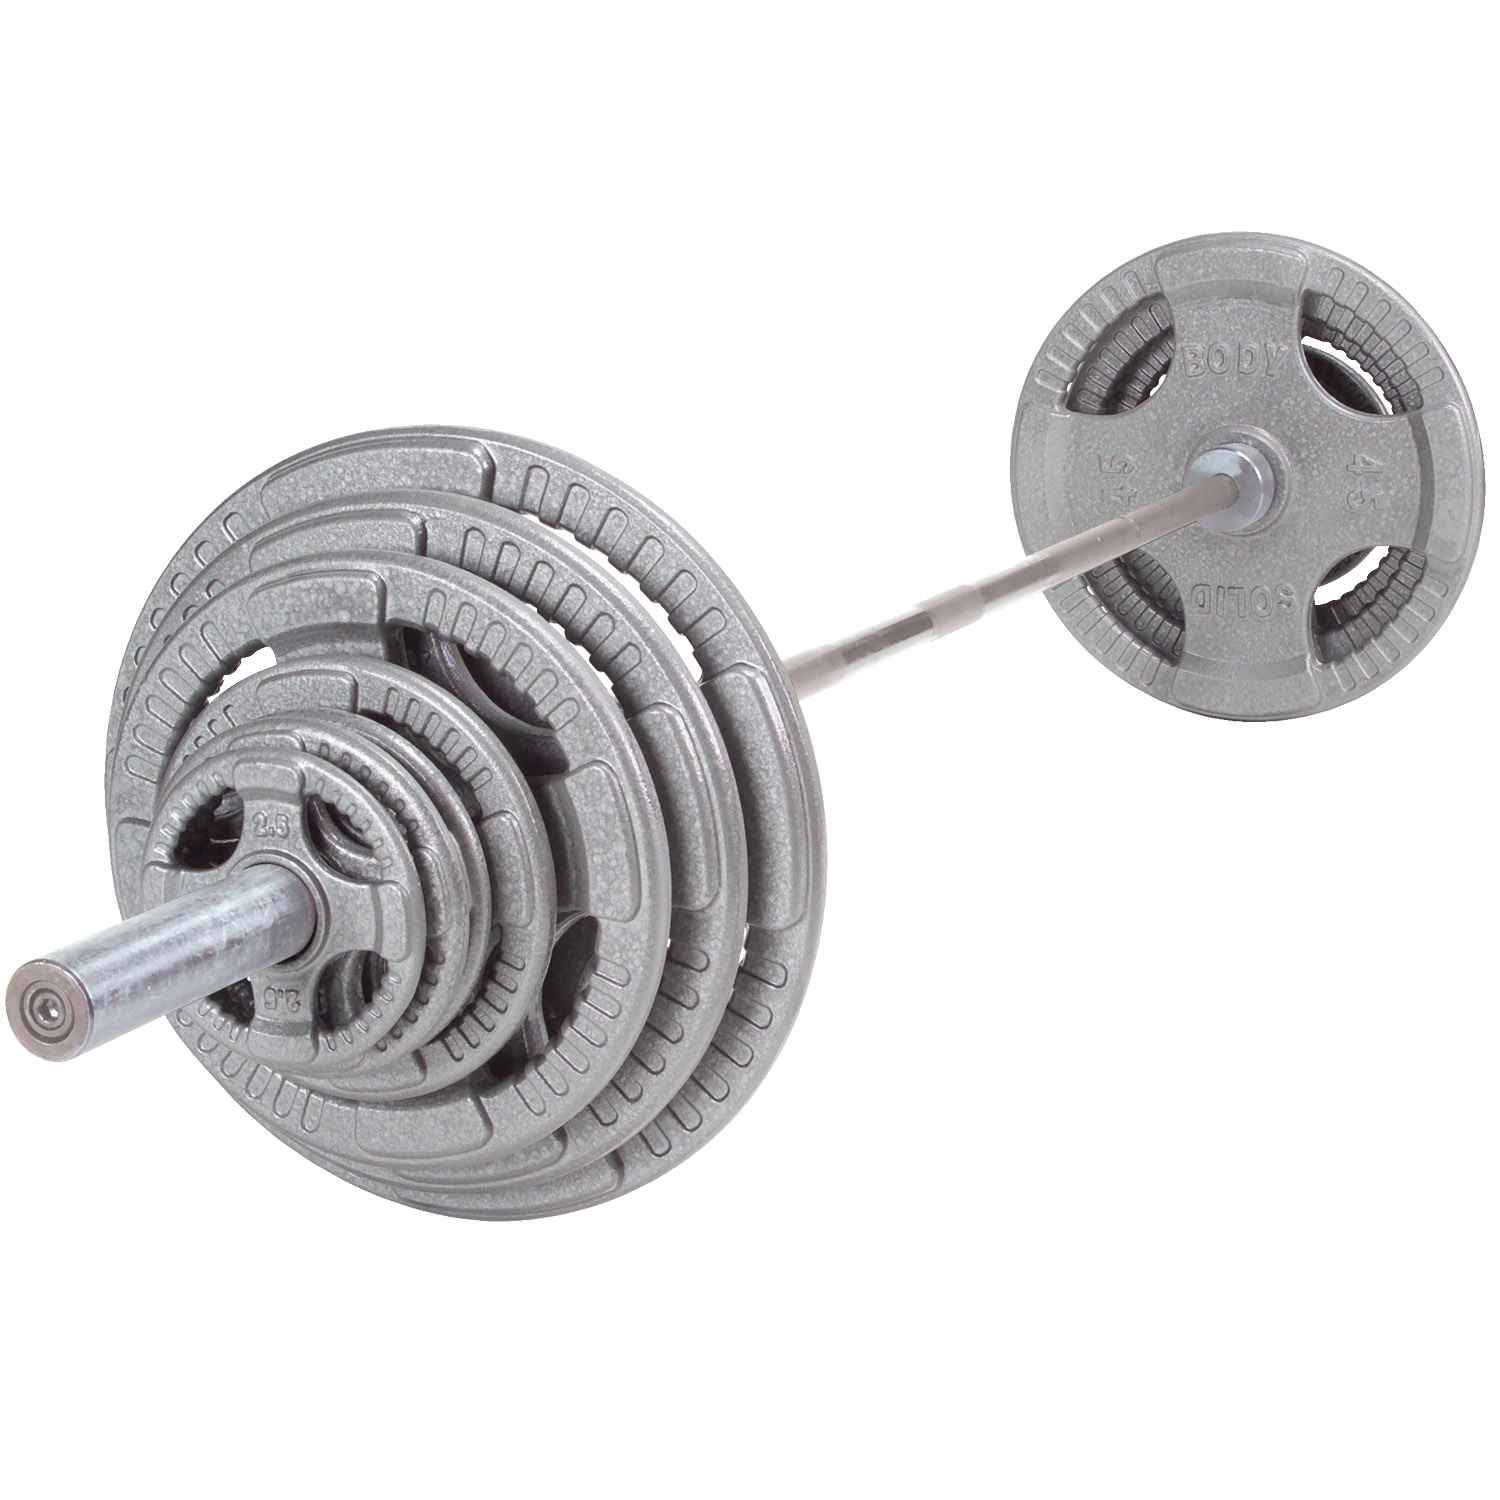 Body-Solid Steel Olympic Grip Plate Set with Bar plate Body-Solid Iron